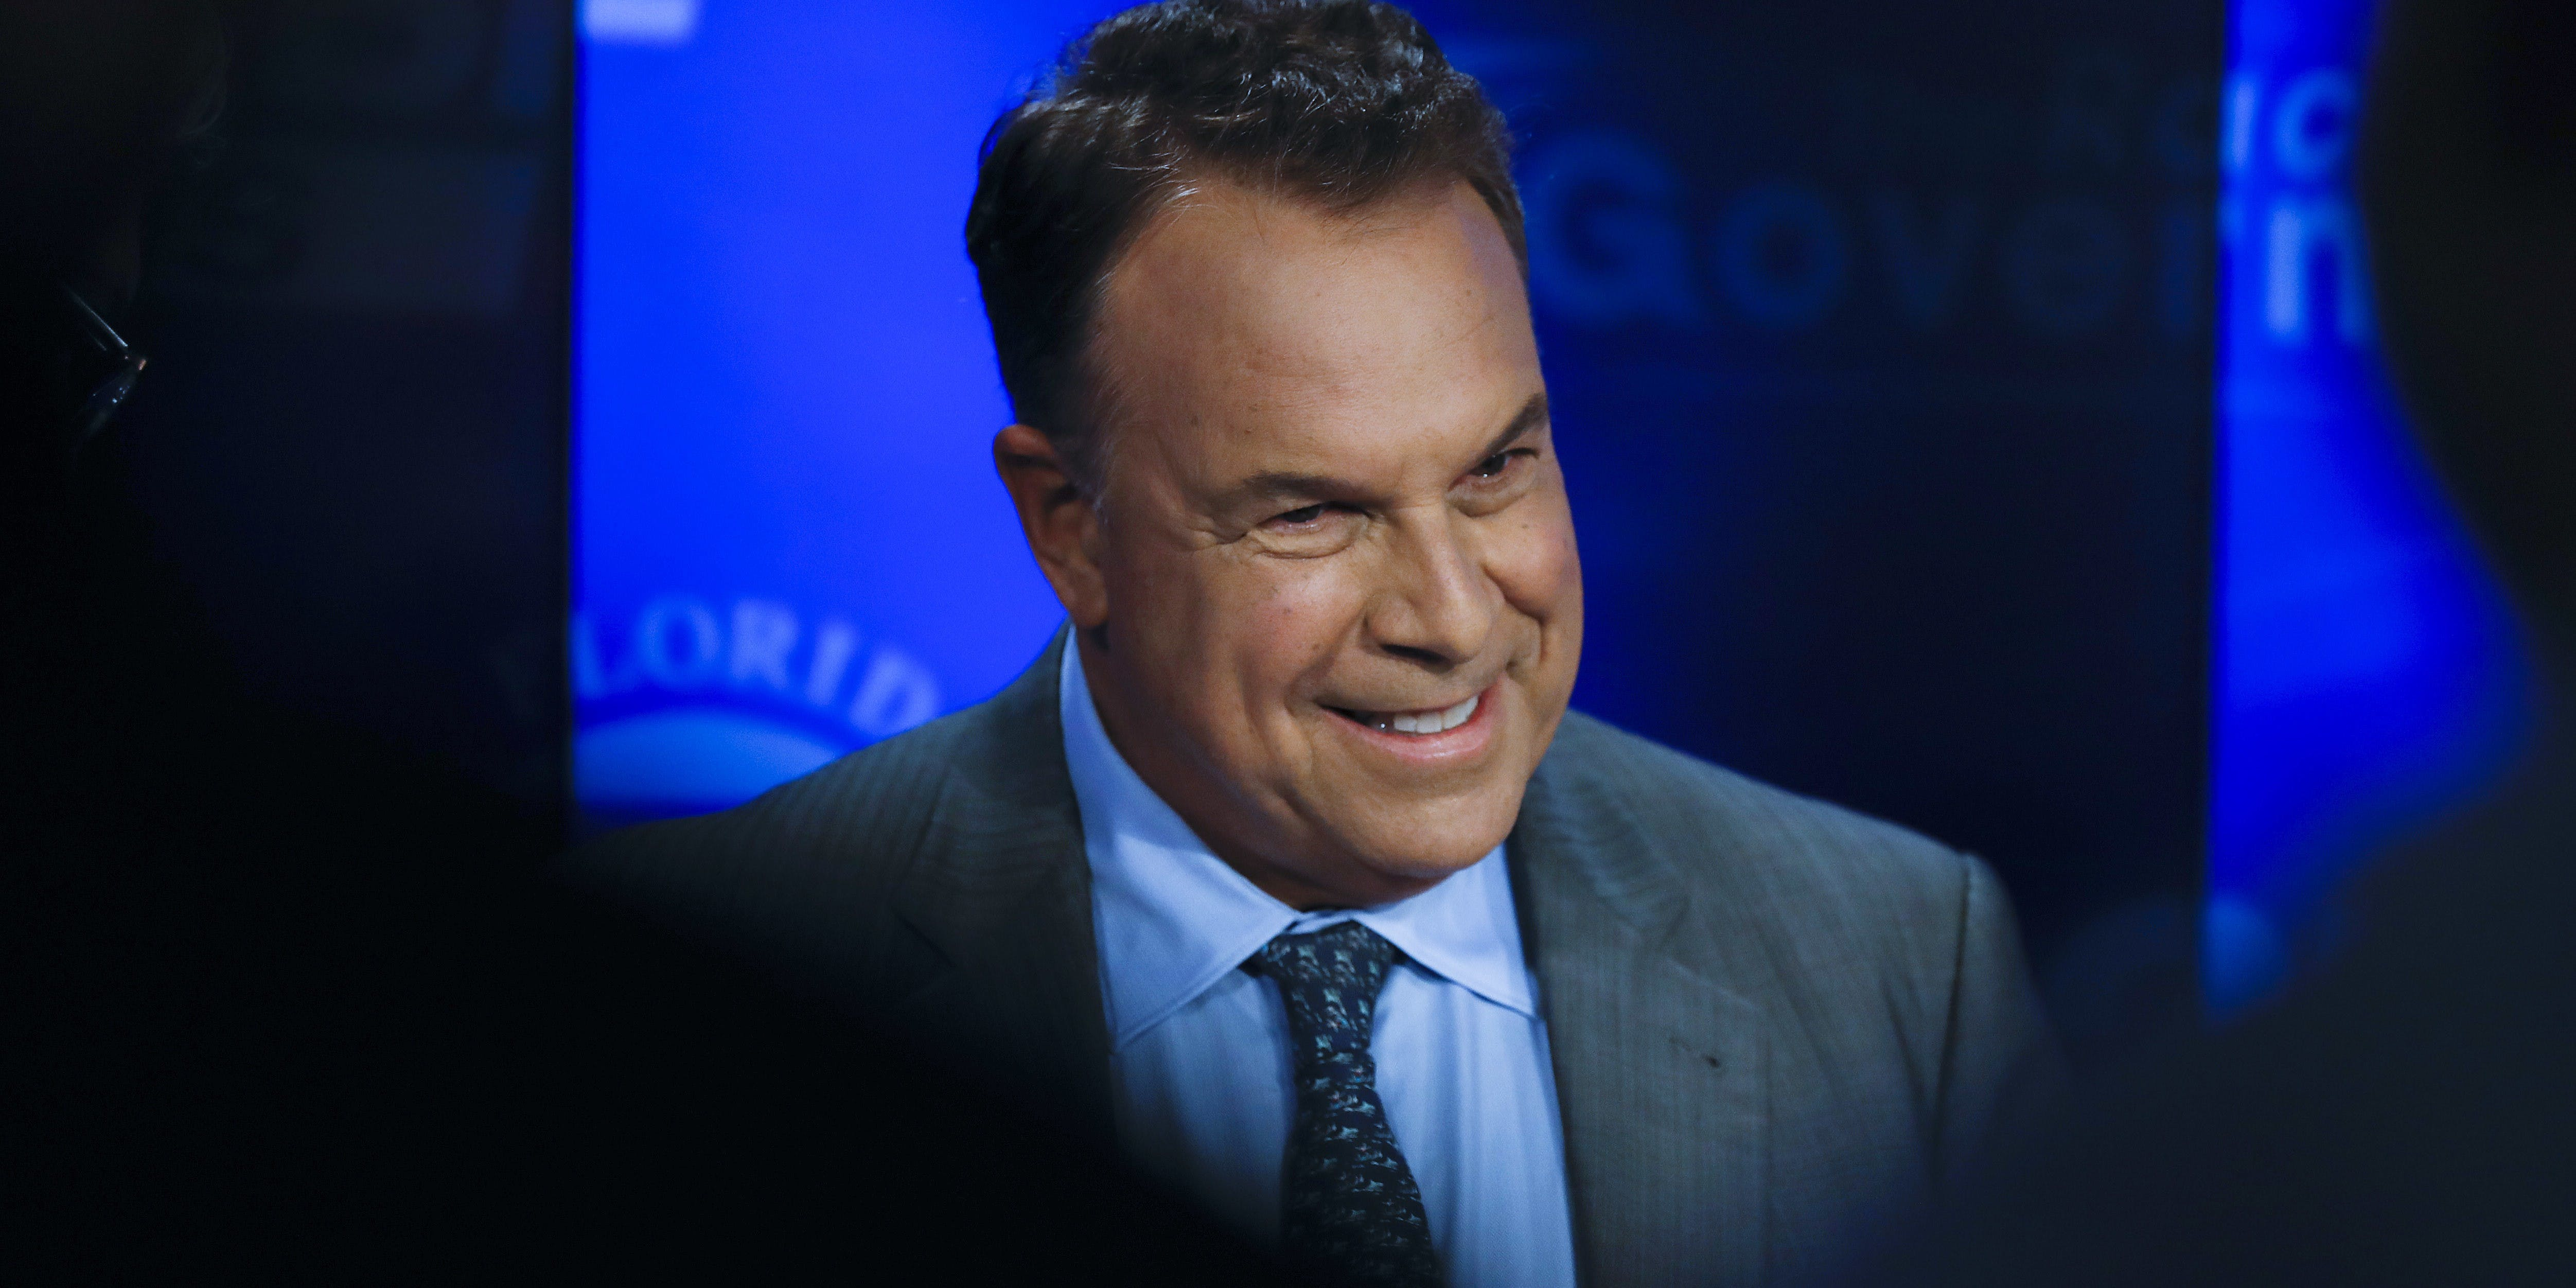 Democratic gubernatorial candidate Jeff Greene awaits the start of a debate ahead of the Democratic primary for governor, Thursday, Aug. 2, 2018, in Palm Beach Gardens, Fla. (AP Photo/Brynn Anderson)